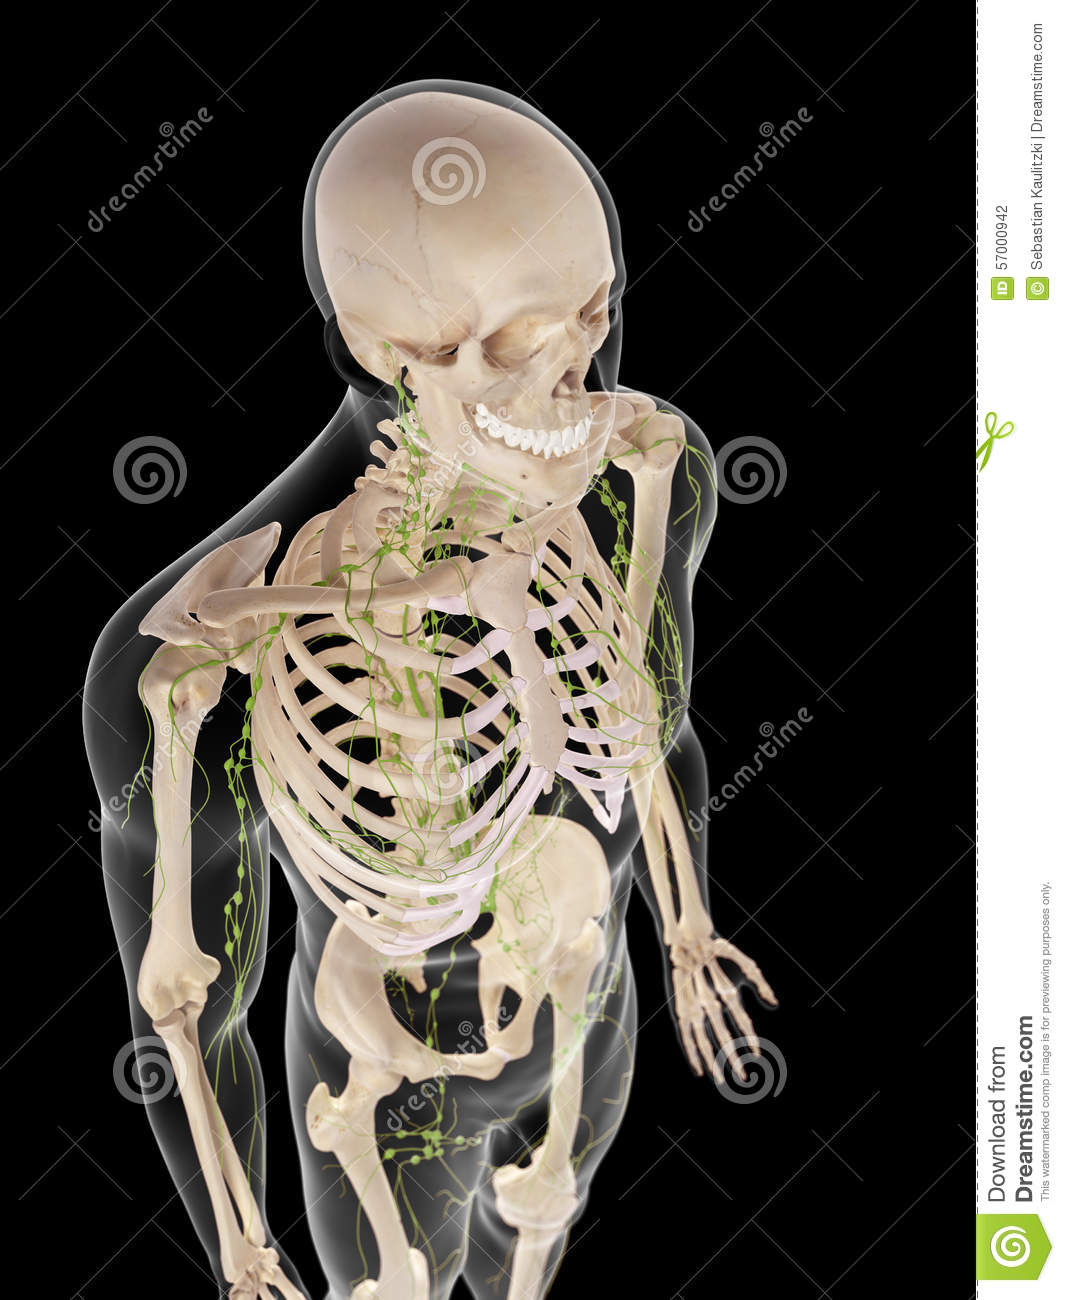 The lymphatic system stock illustration. Illustration of ...